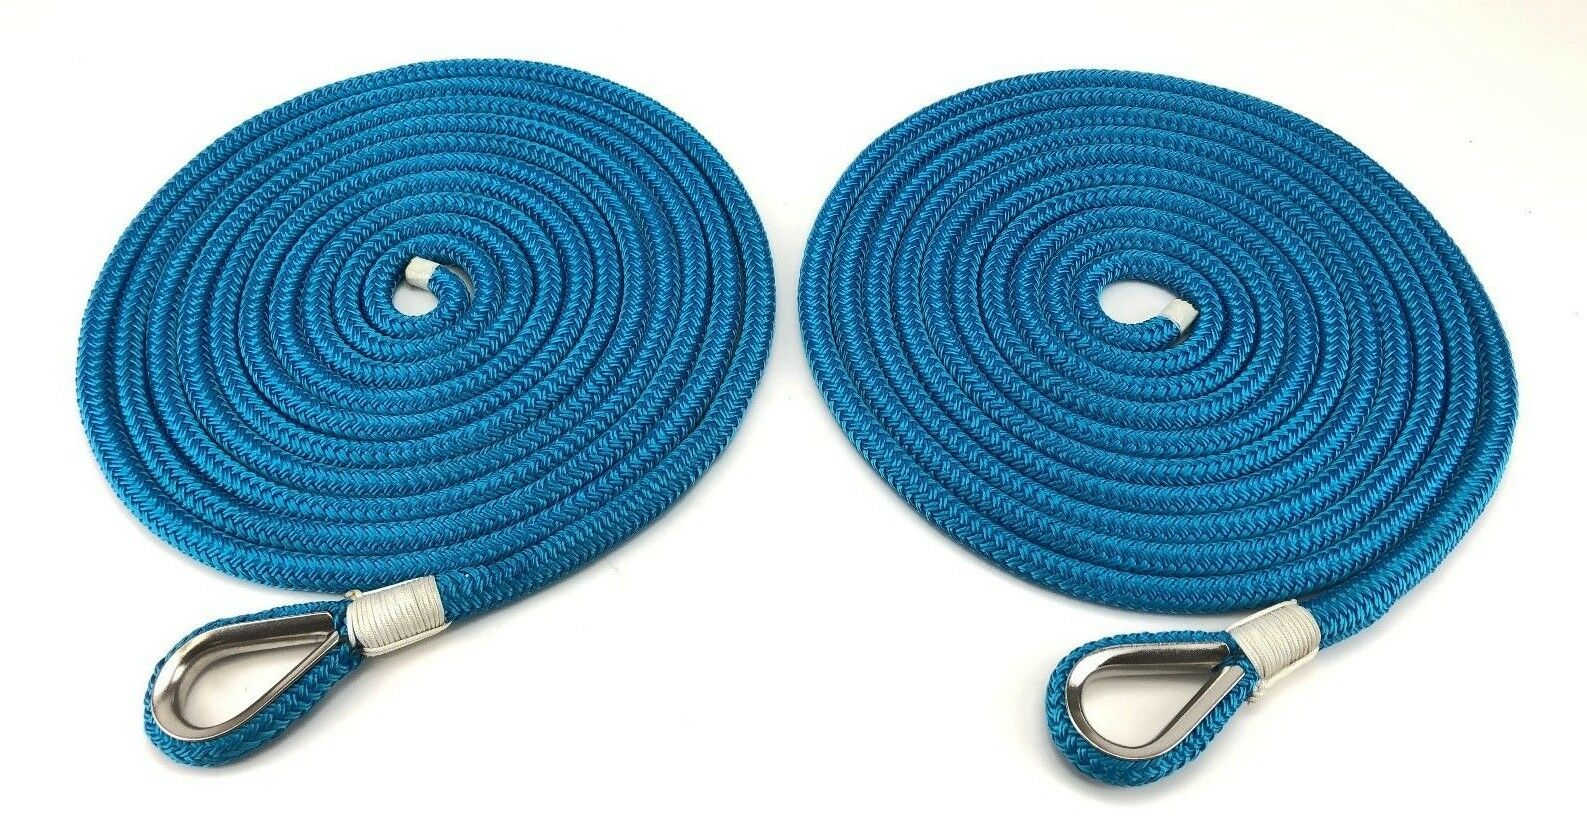 10mm Royal bluee Double Braid Polyester Mooring Ropes, 2 x 8 Mts, Stainless Eye